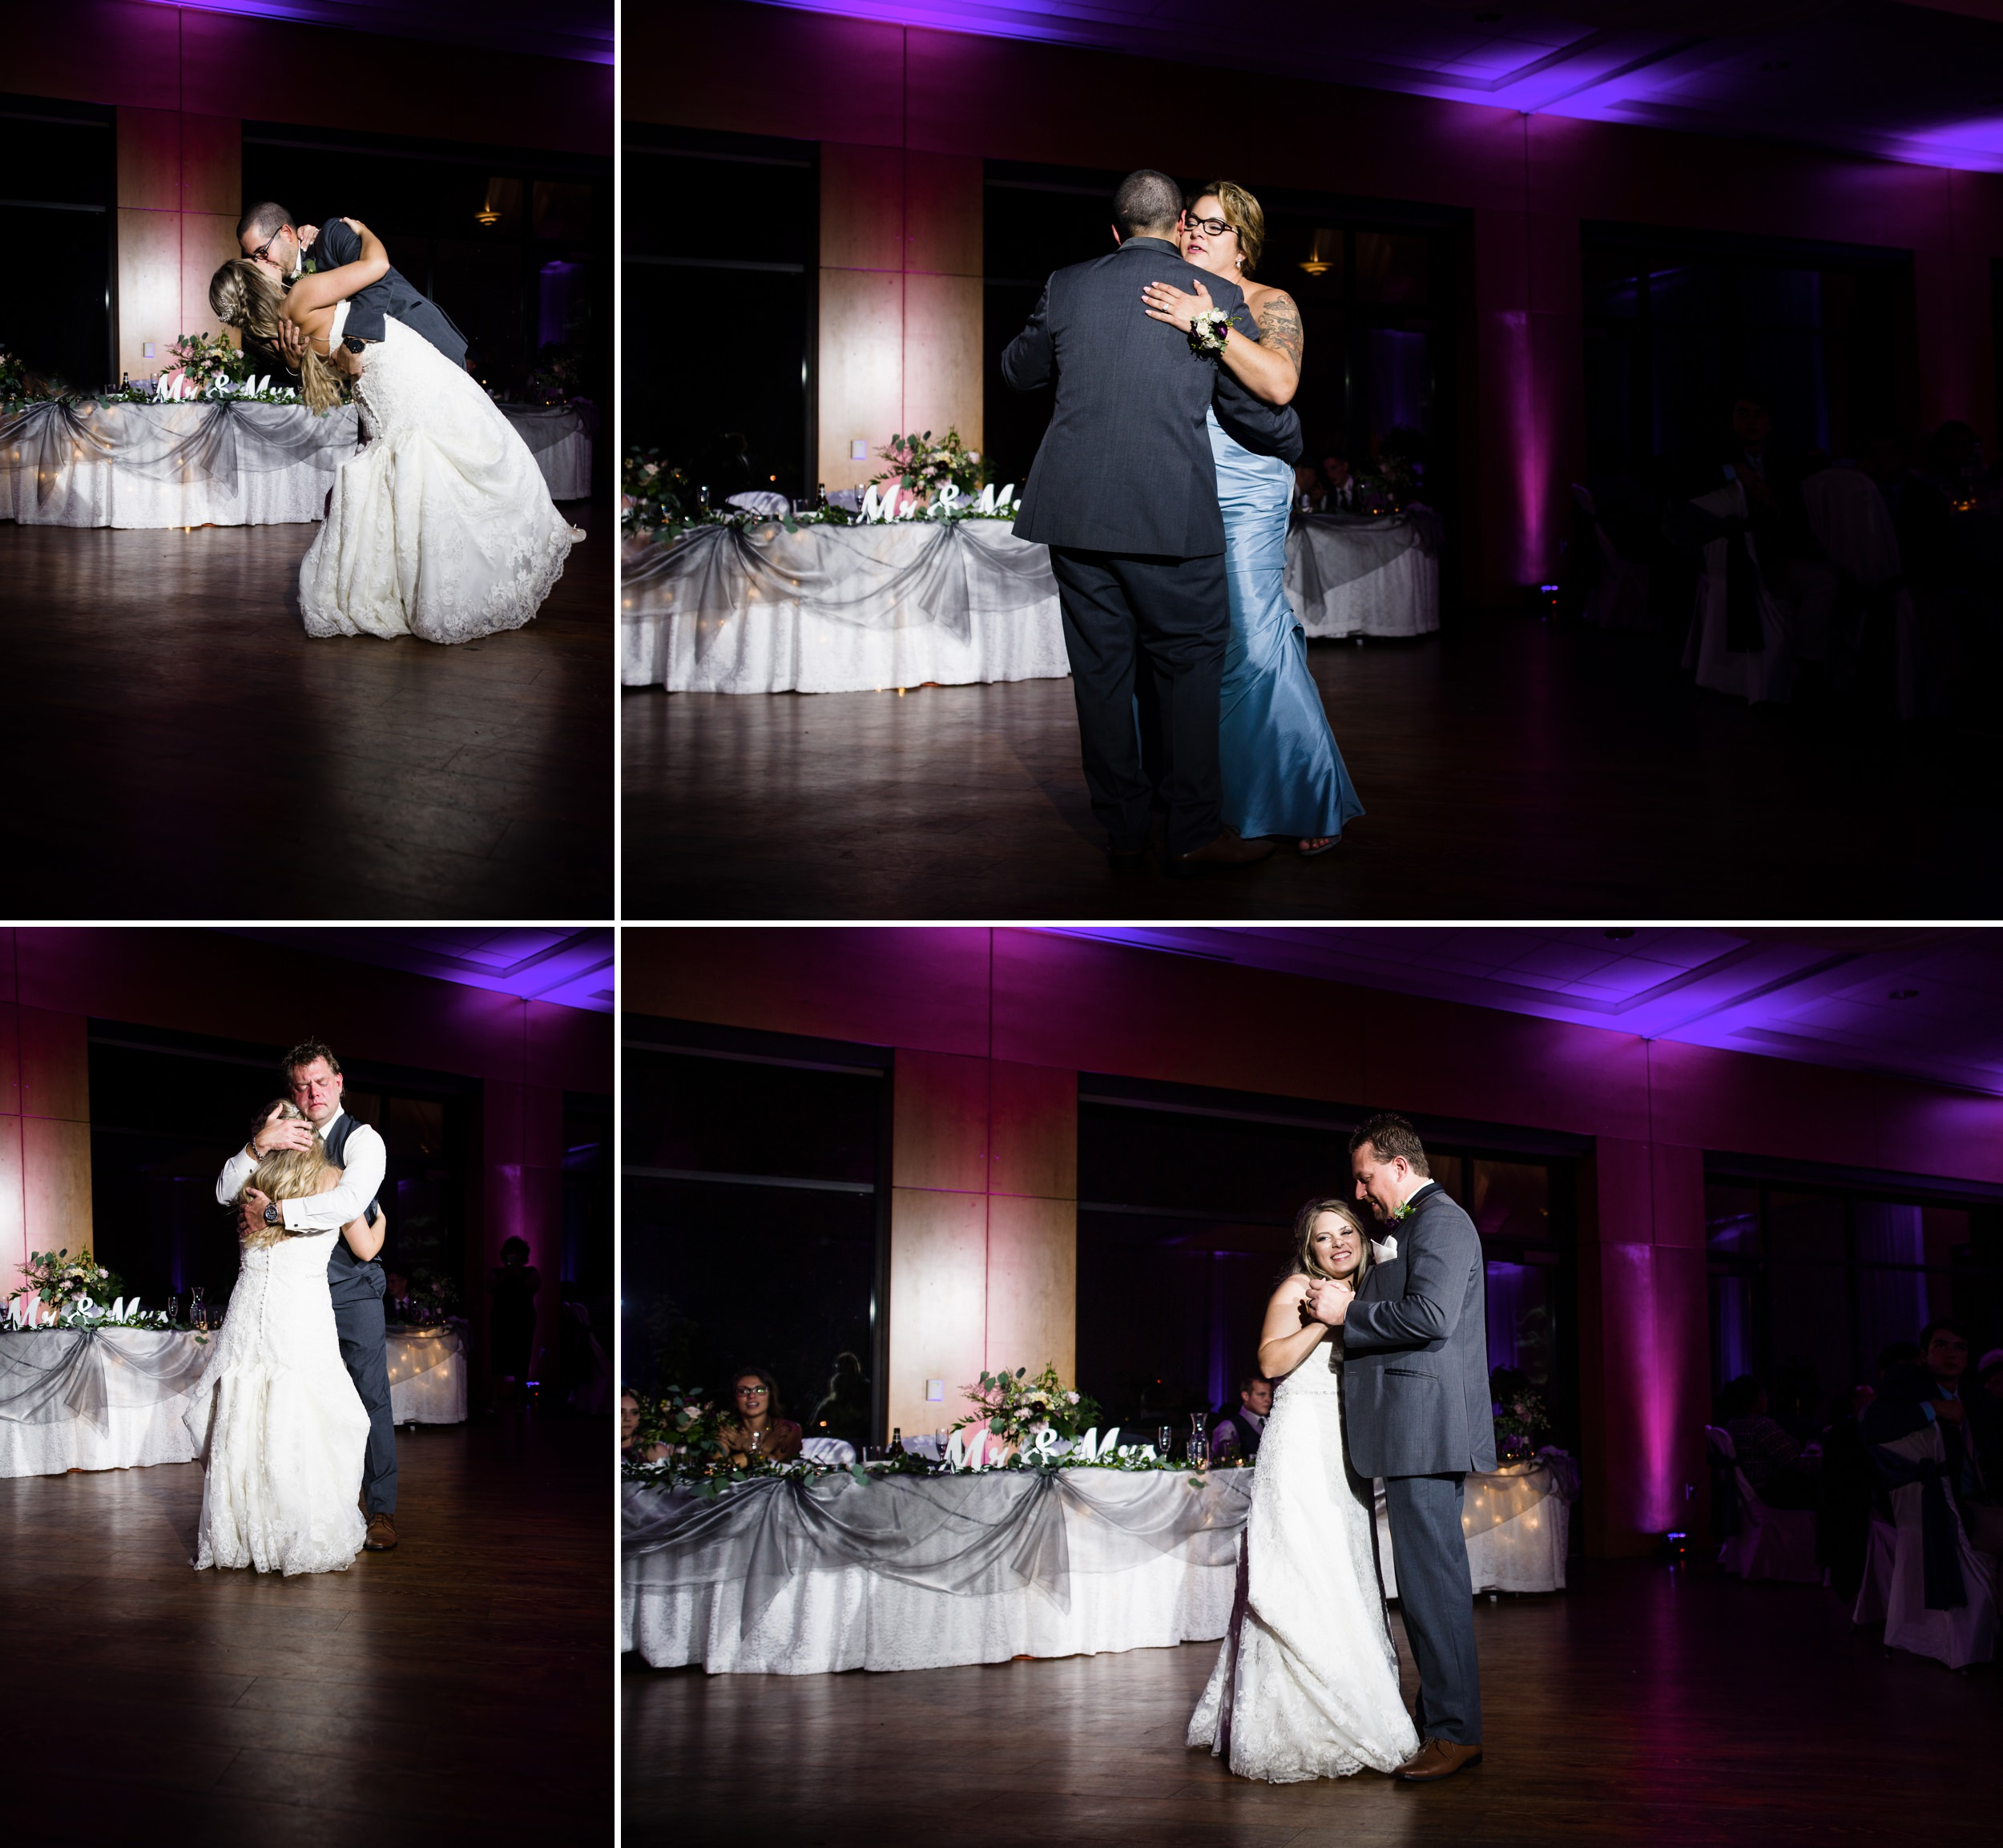 First dances with purple uplighting.